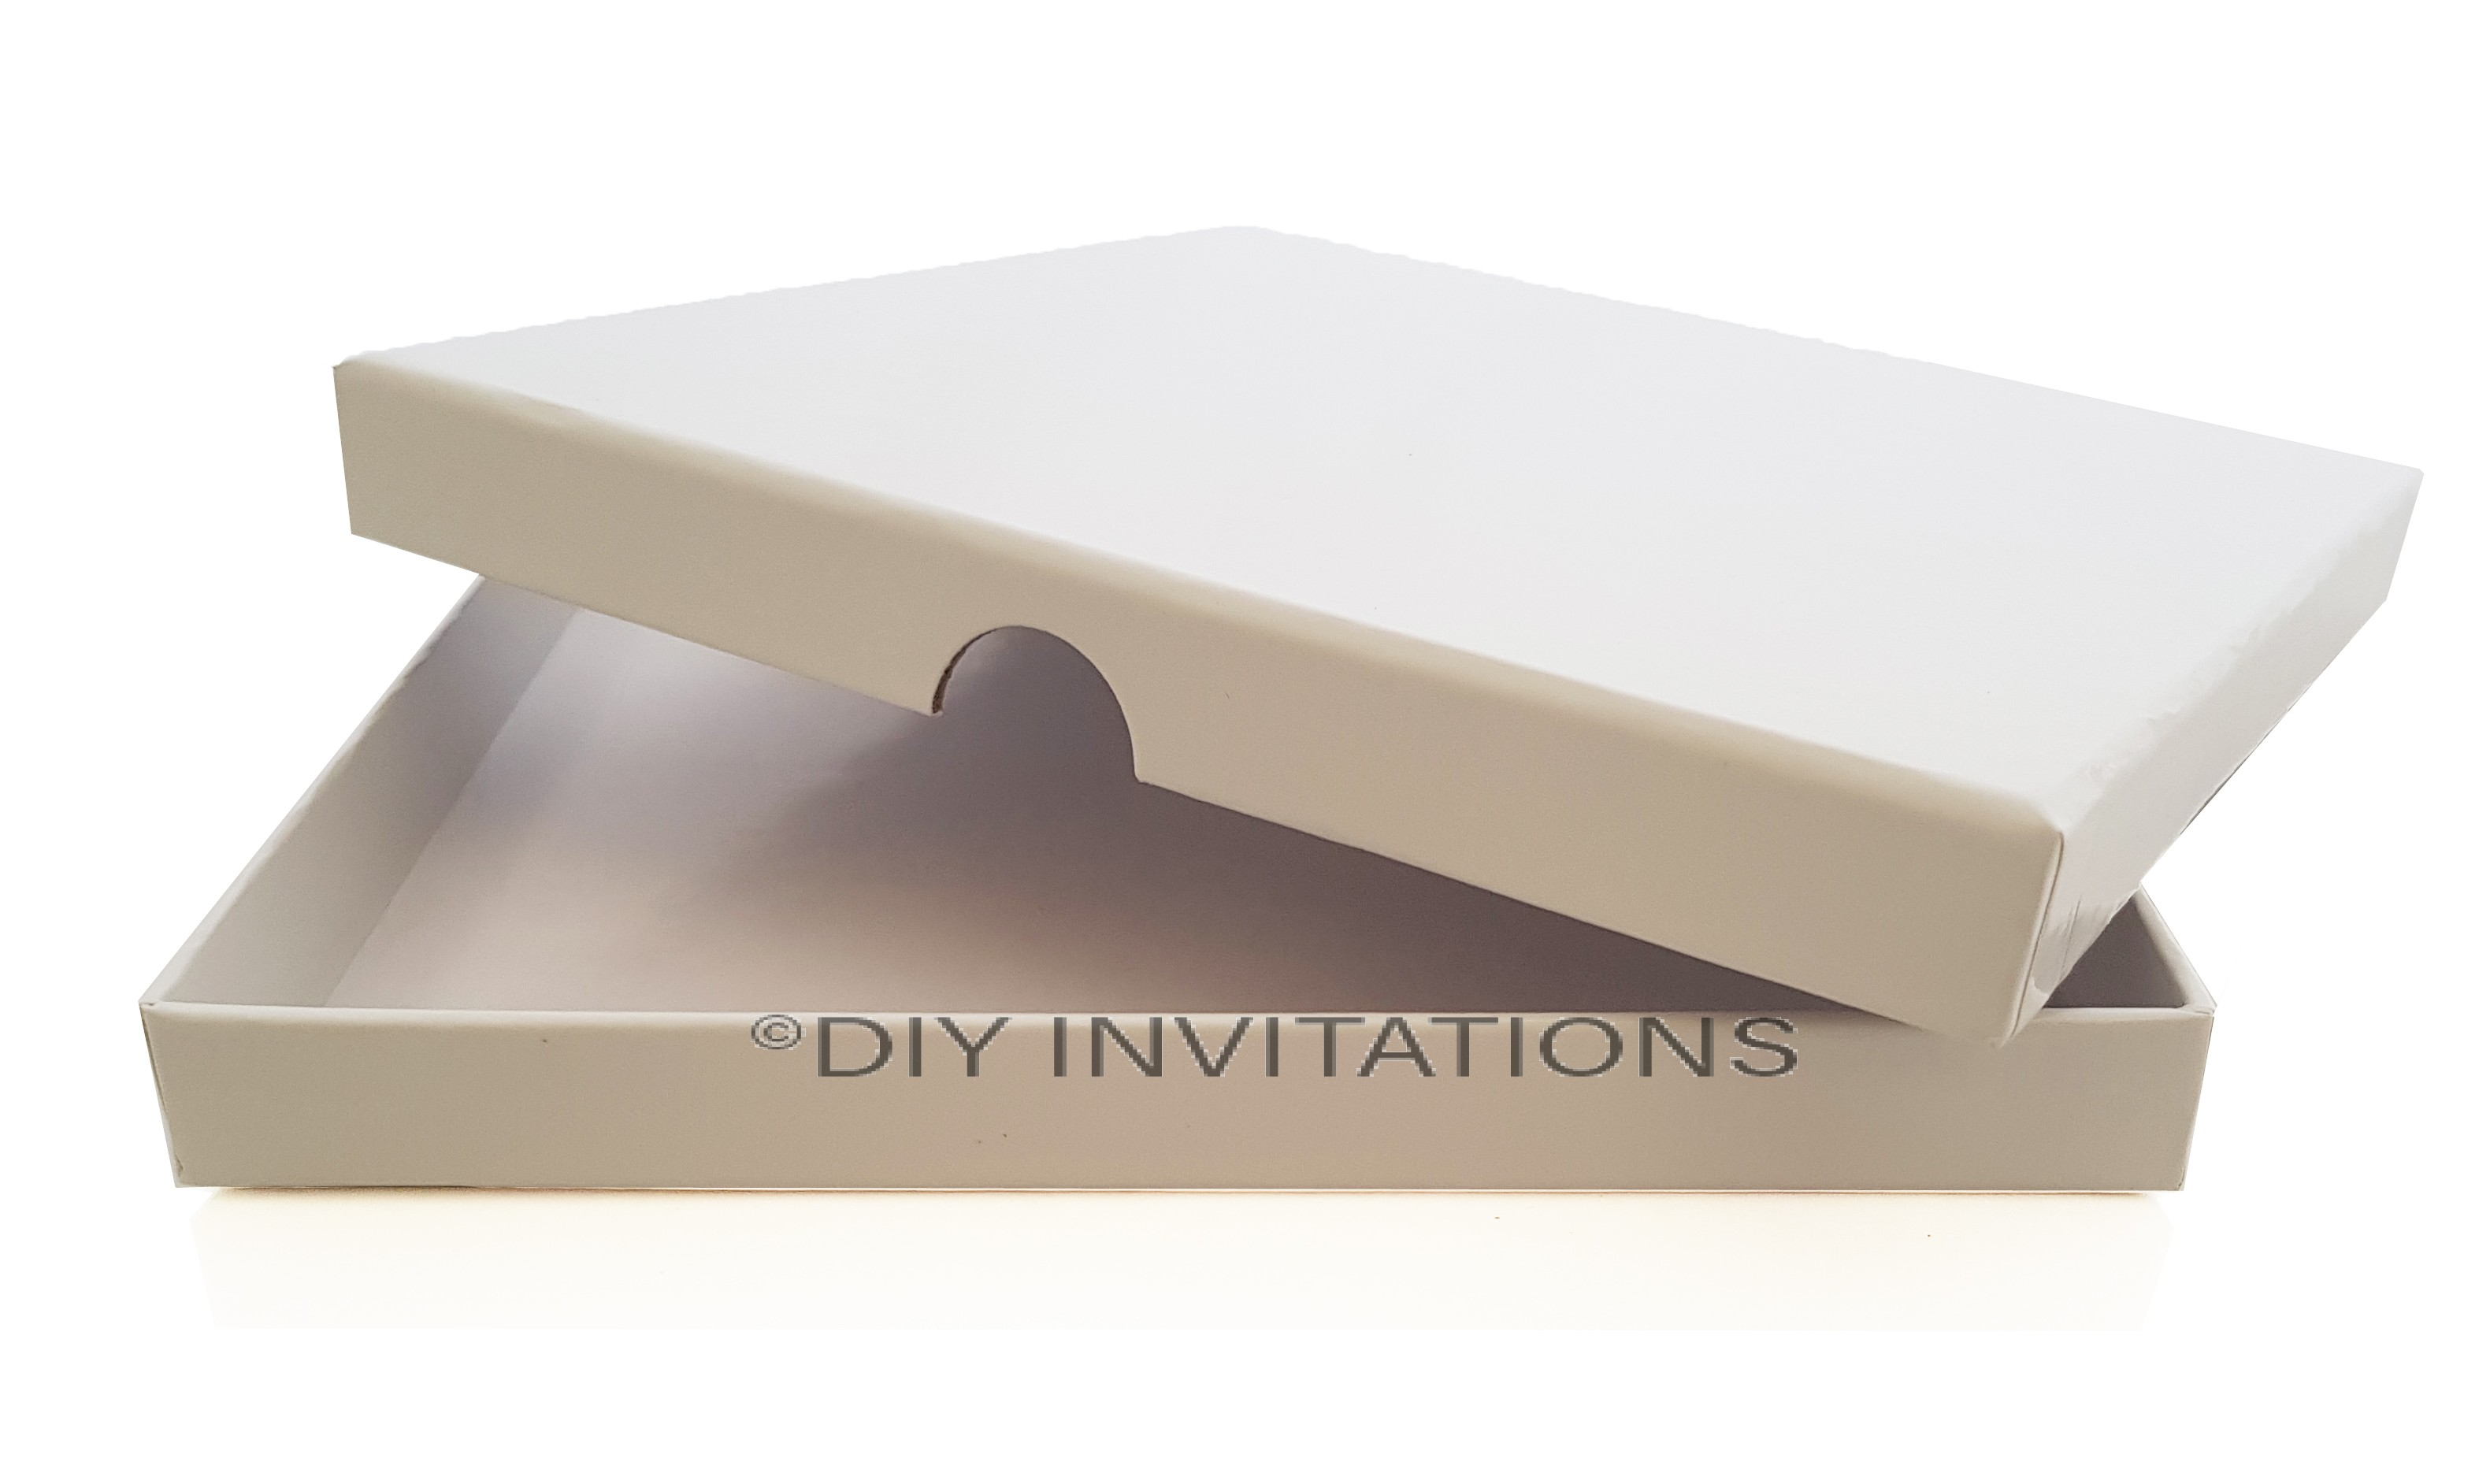 Rigid Invitation Box - Square - Gloss White (150x150mm)